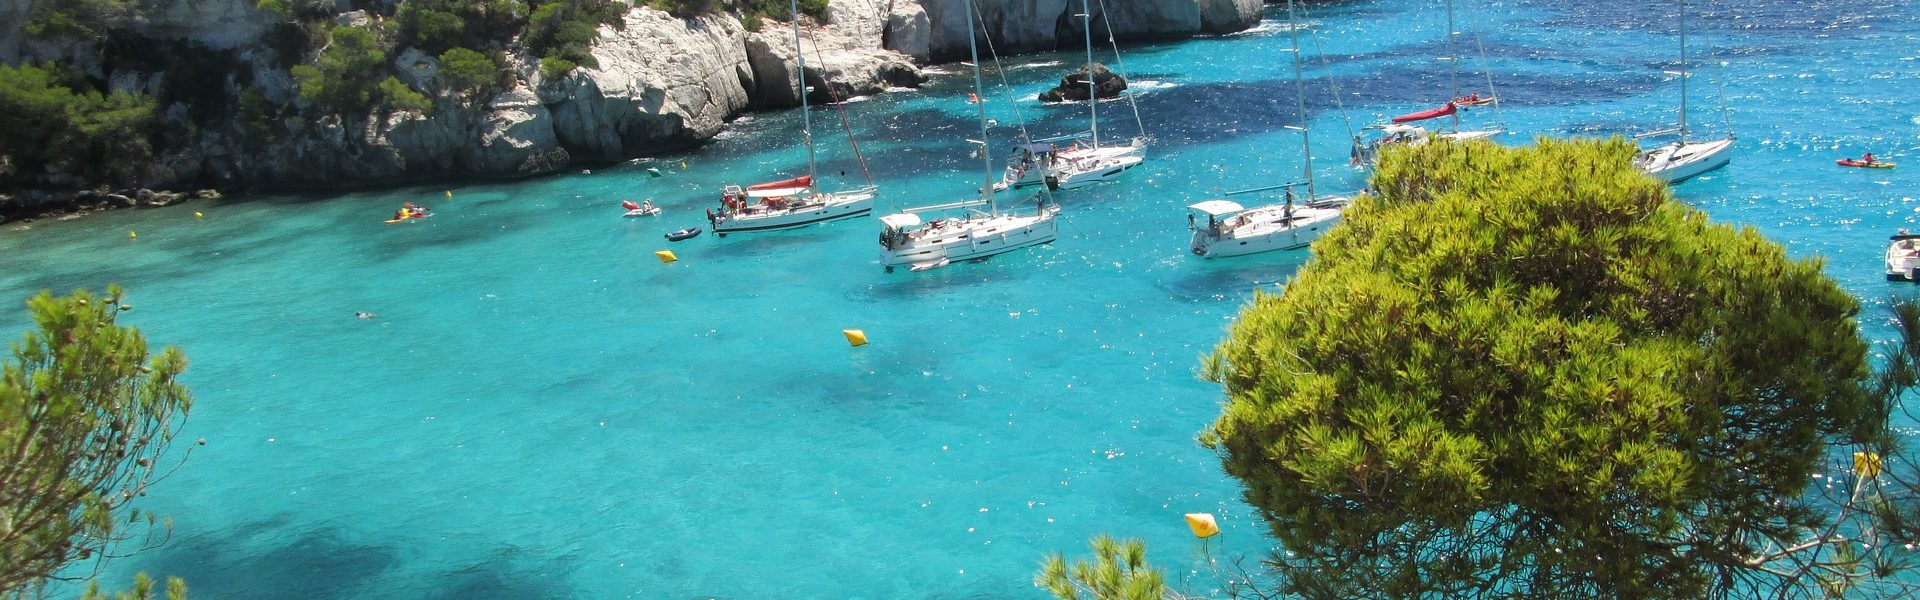 Minorca – Resort Accessibile in Stile Minorchino